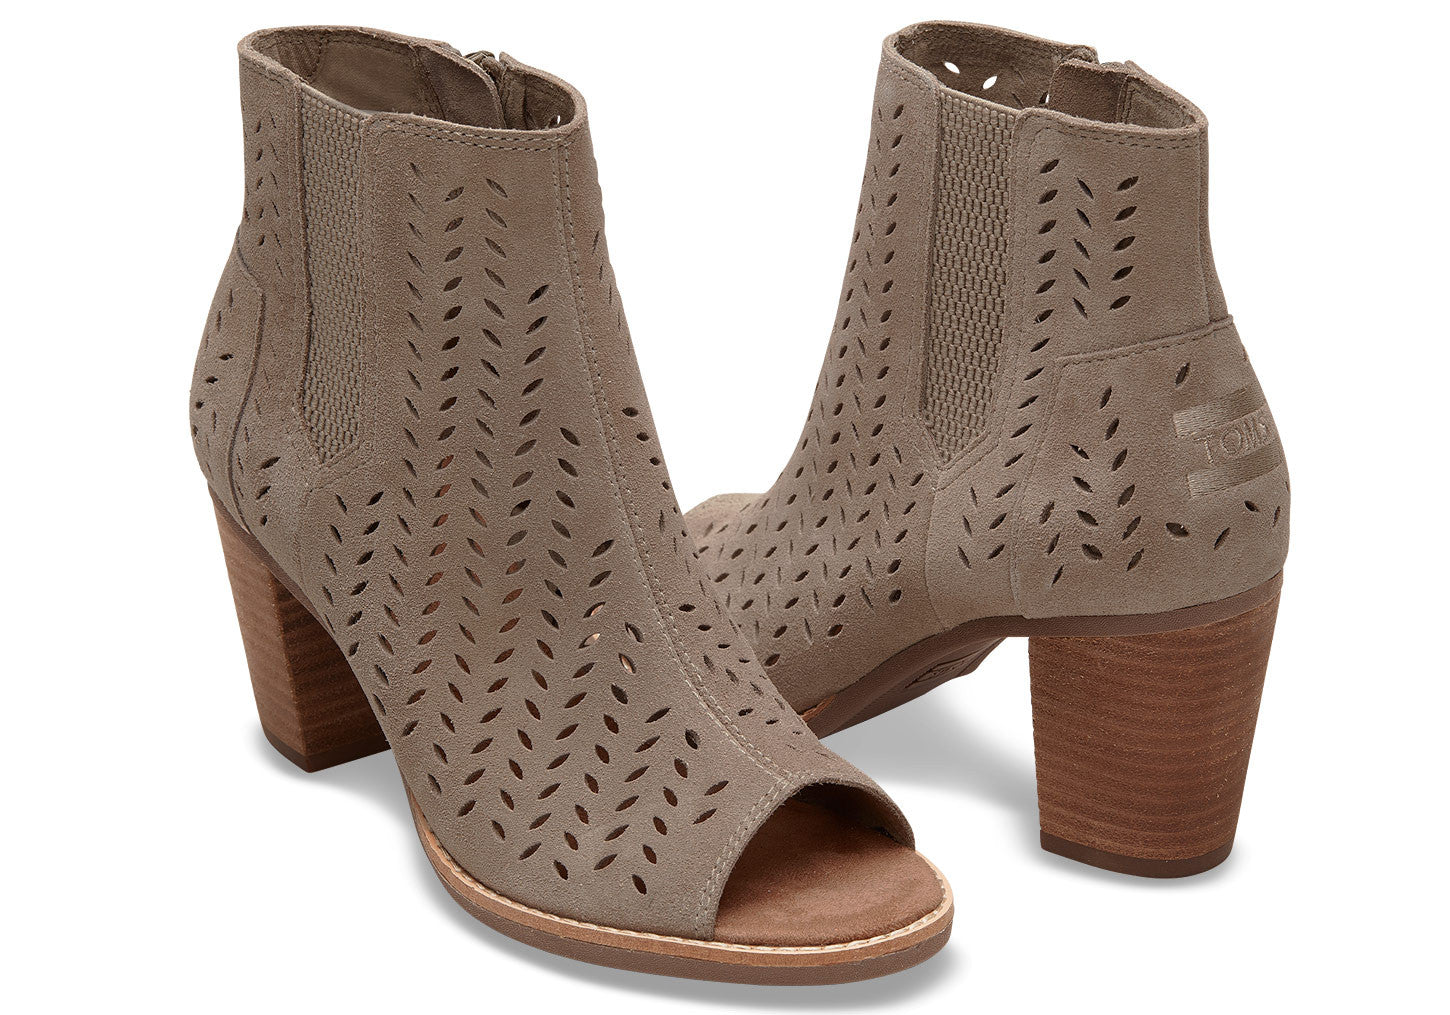 bd1708f8fd60 TOMS DESERT TAUPE SUEDE PERFORATED LEAF WOMEN S MAJORCA PEEP TOE BOOTI - T.  Georgiano s